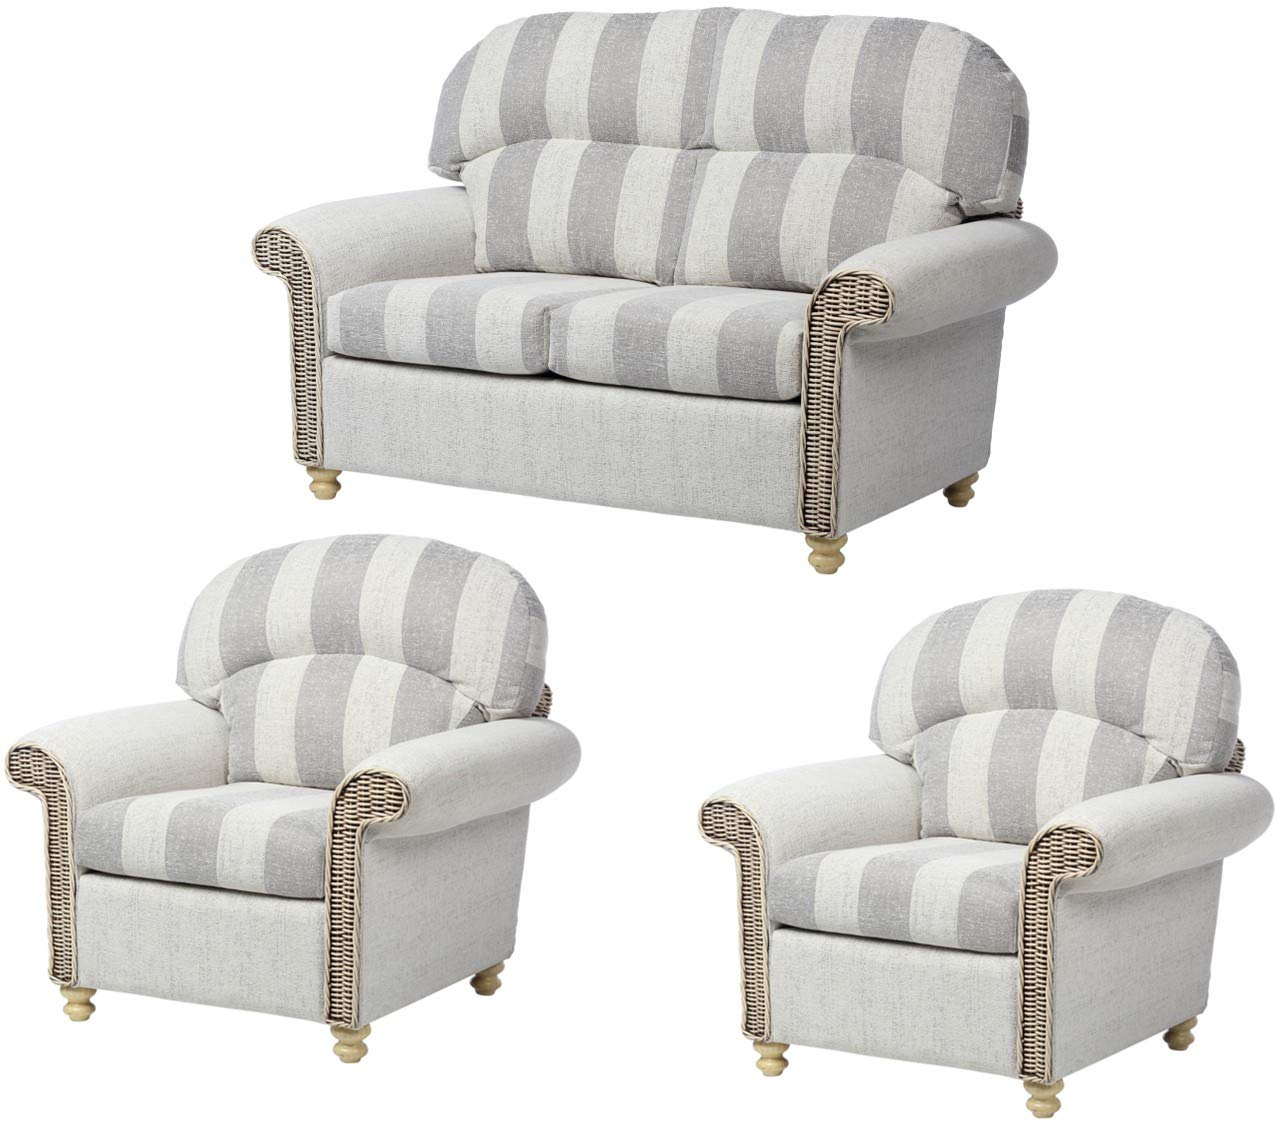 Desser Stamford Conservatory Furniture Set 2 Seater Sofa 2x Armchairs Indoor Real Cane Wicker Chair Settee Suite With Uk Made Cushions Premium Athena Stripe Fabric Fully Assembled Buy